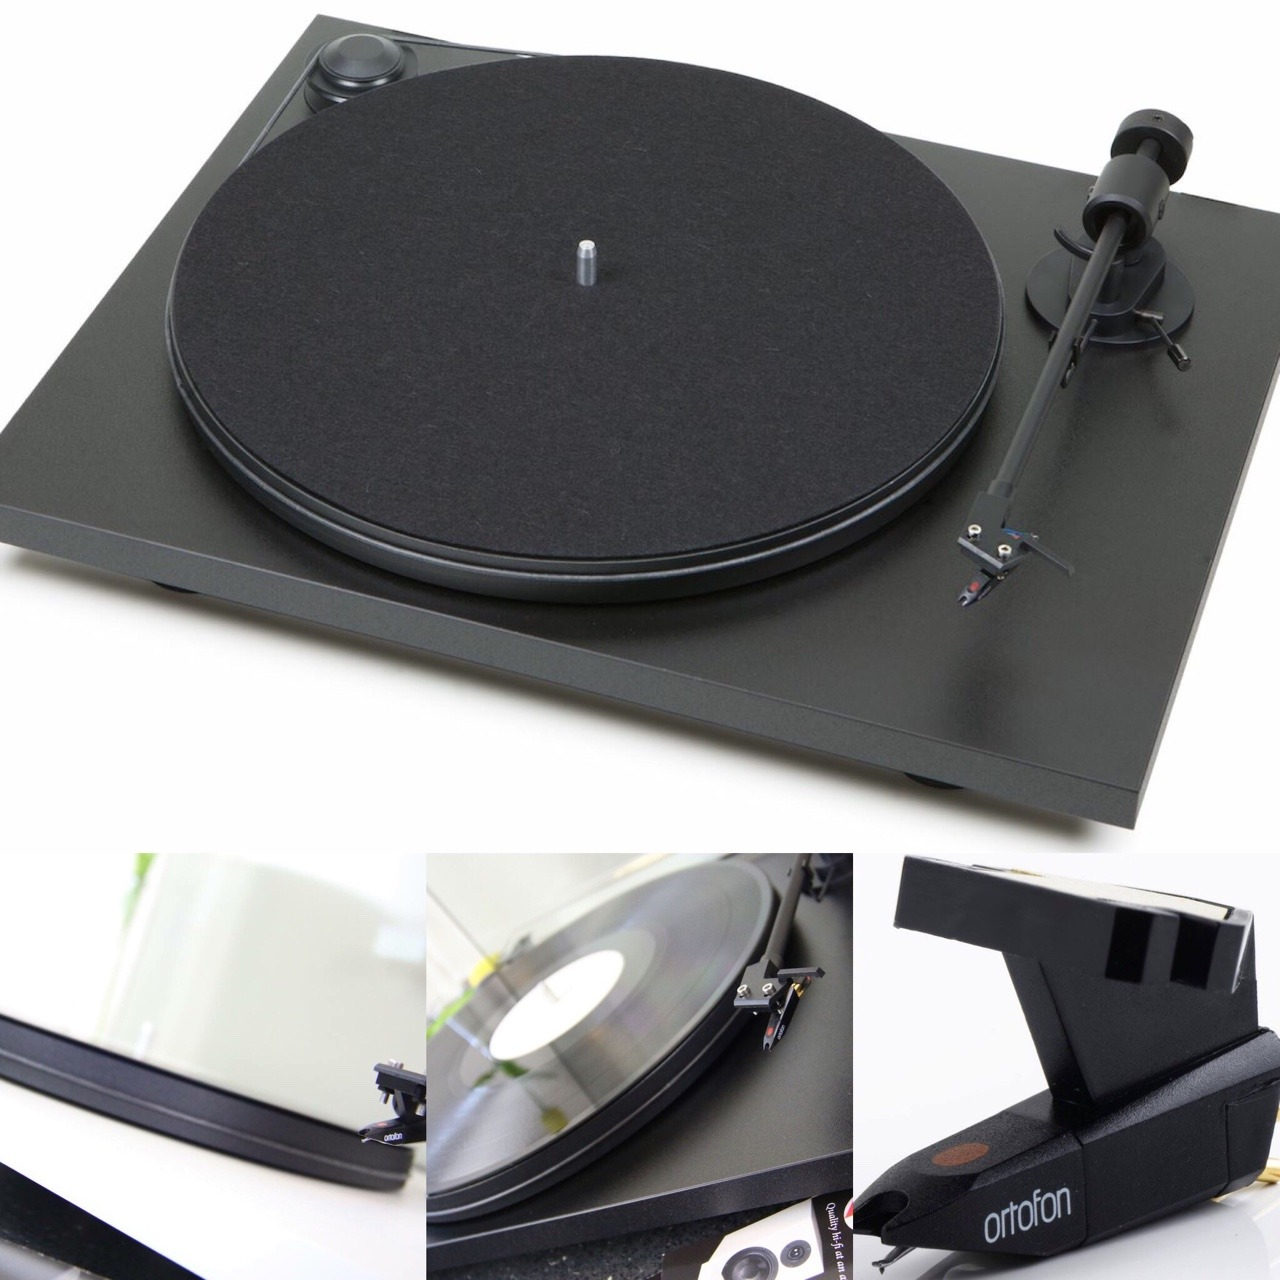 The Audiophile Man — AUDIOPHILE MAN - HIFI REVIEW: PRO-JECT PRIMARY